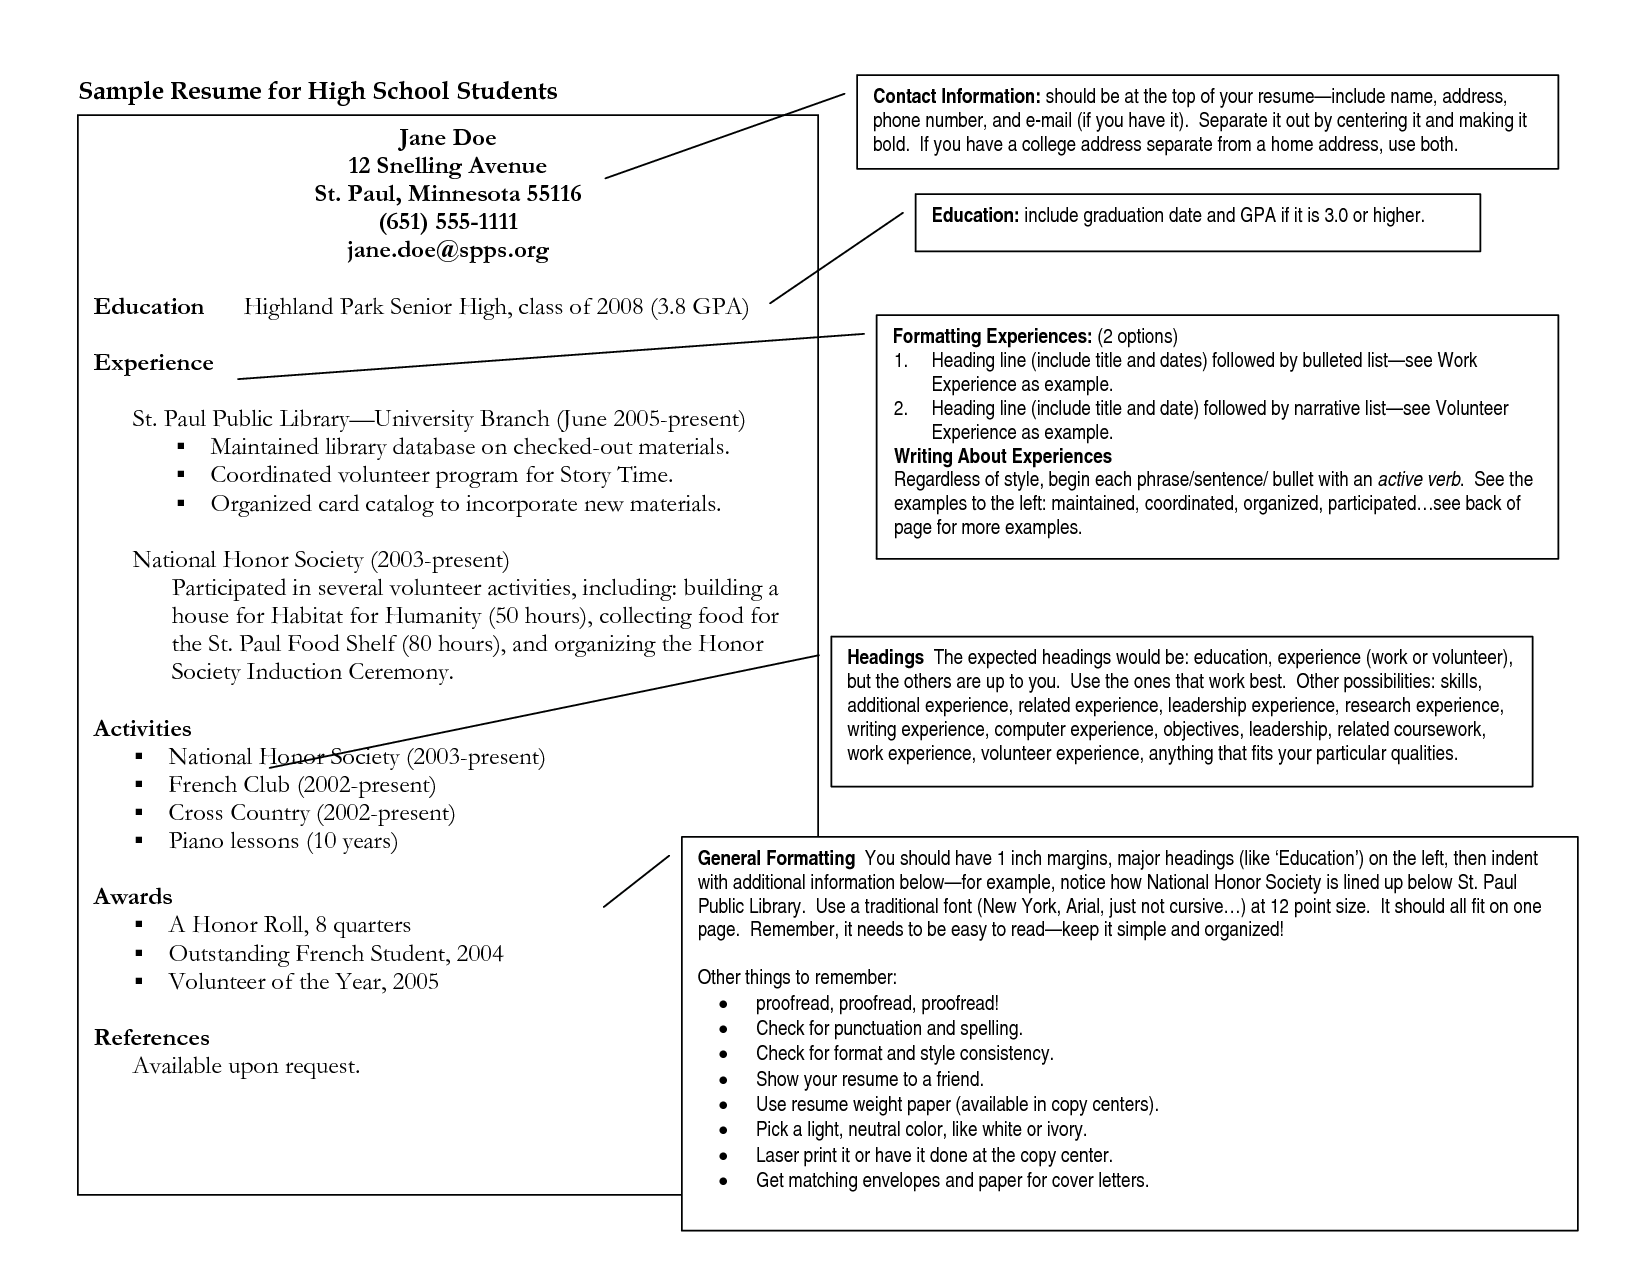 orland high school  career center resume tips  resume guideline